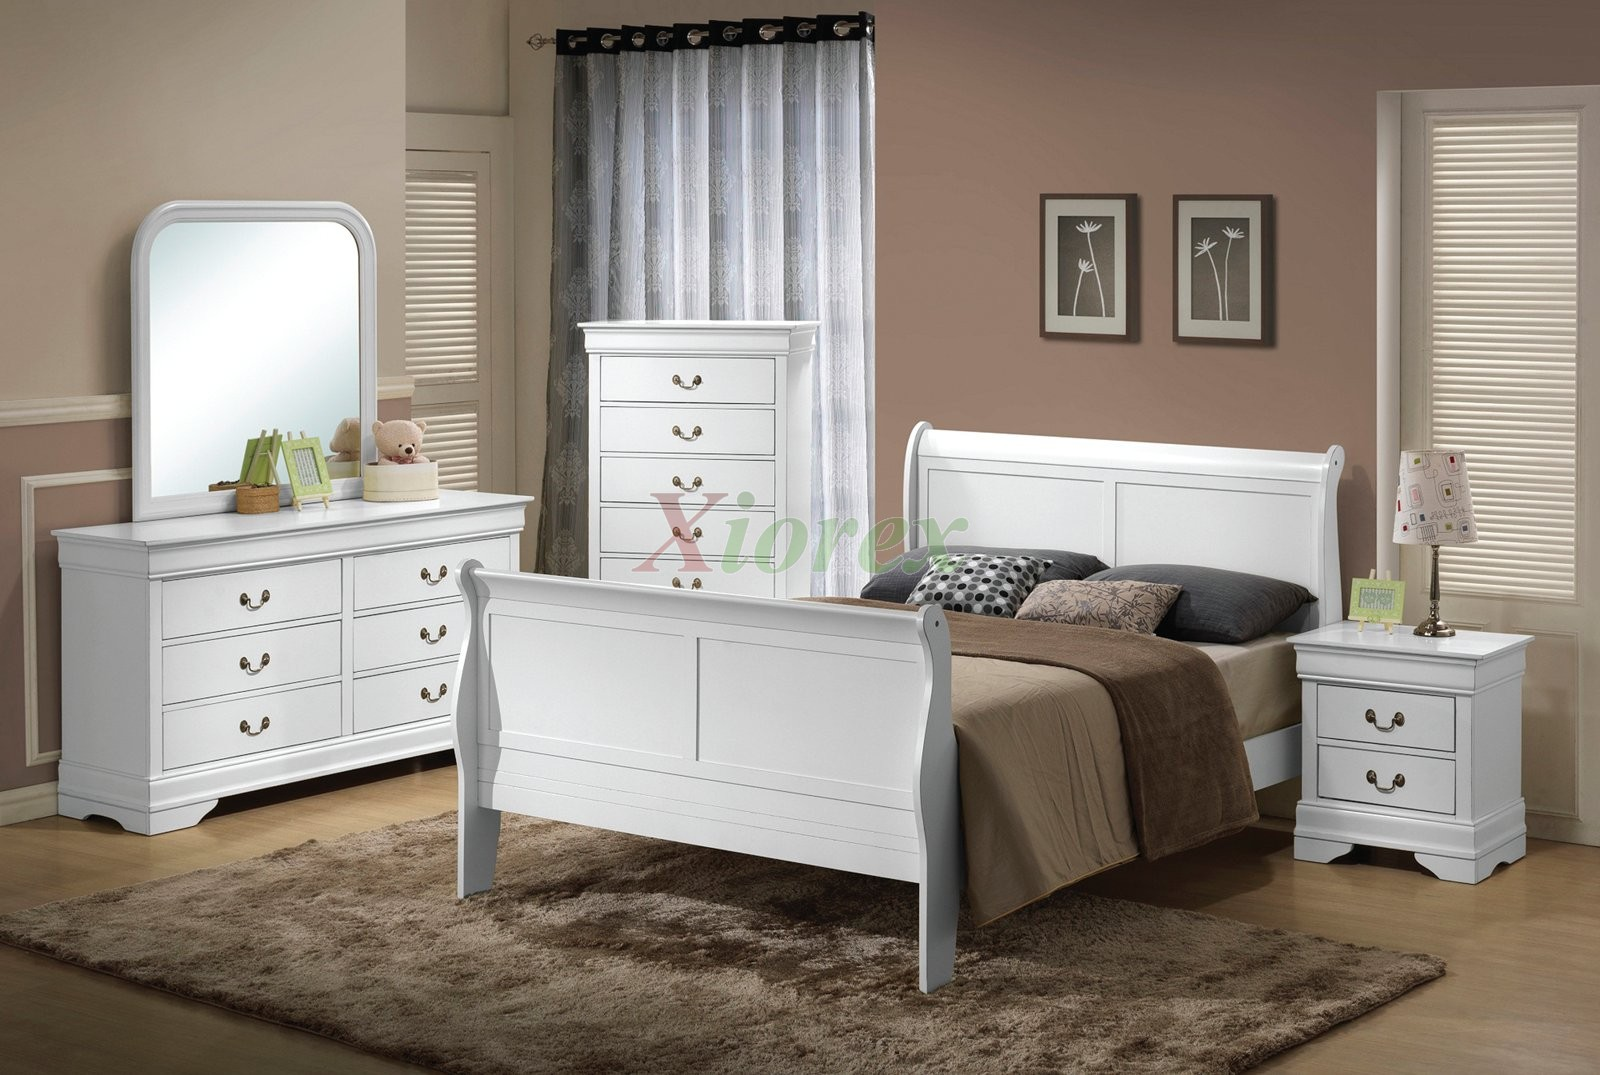 Semi gloss sleigh like bedroom furniture set 170 in cherry for White dresser set bedroom furniture